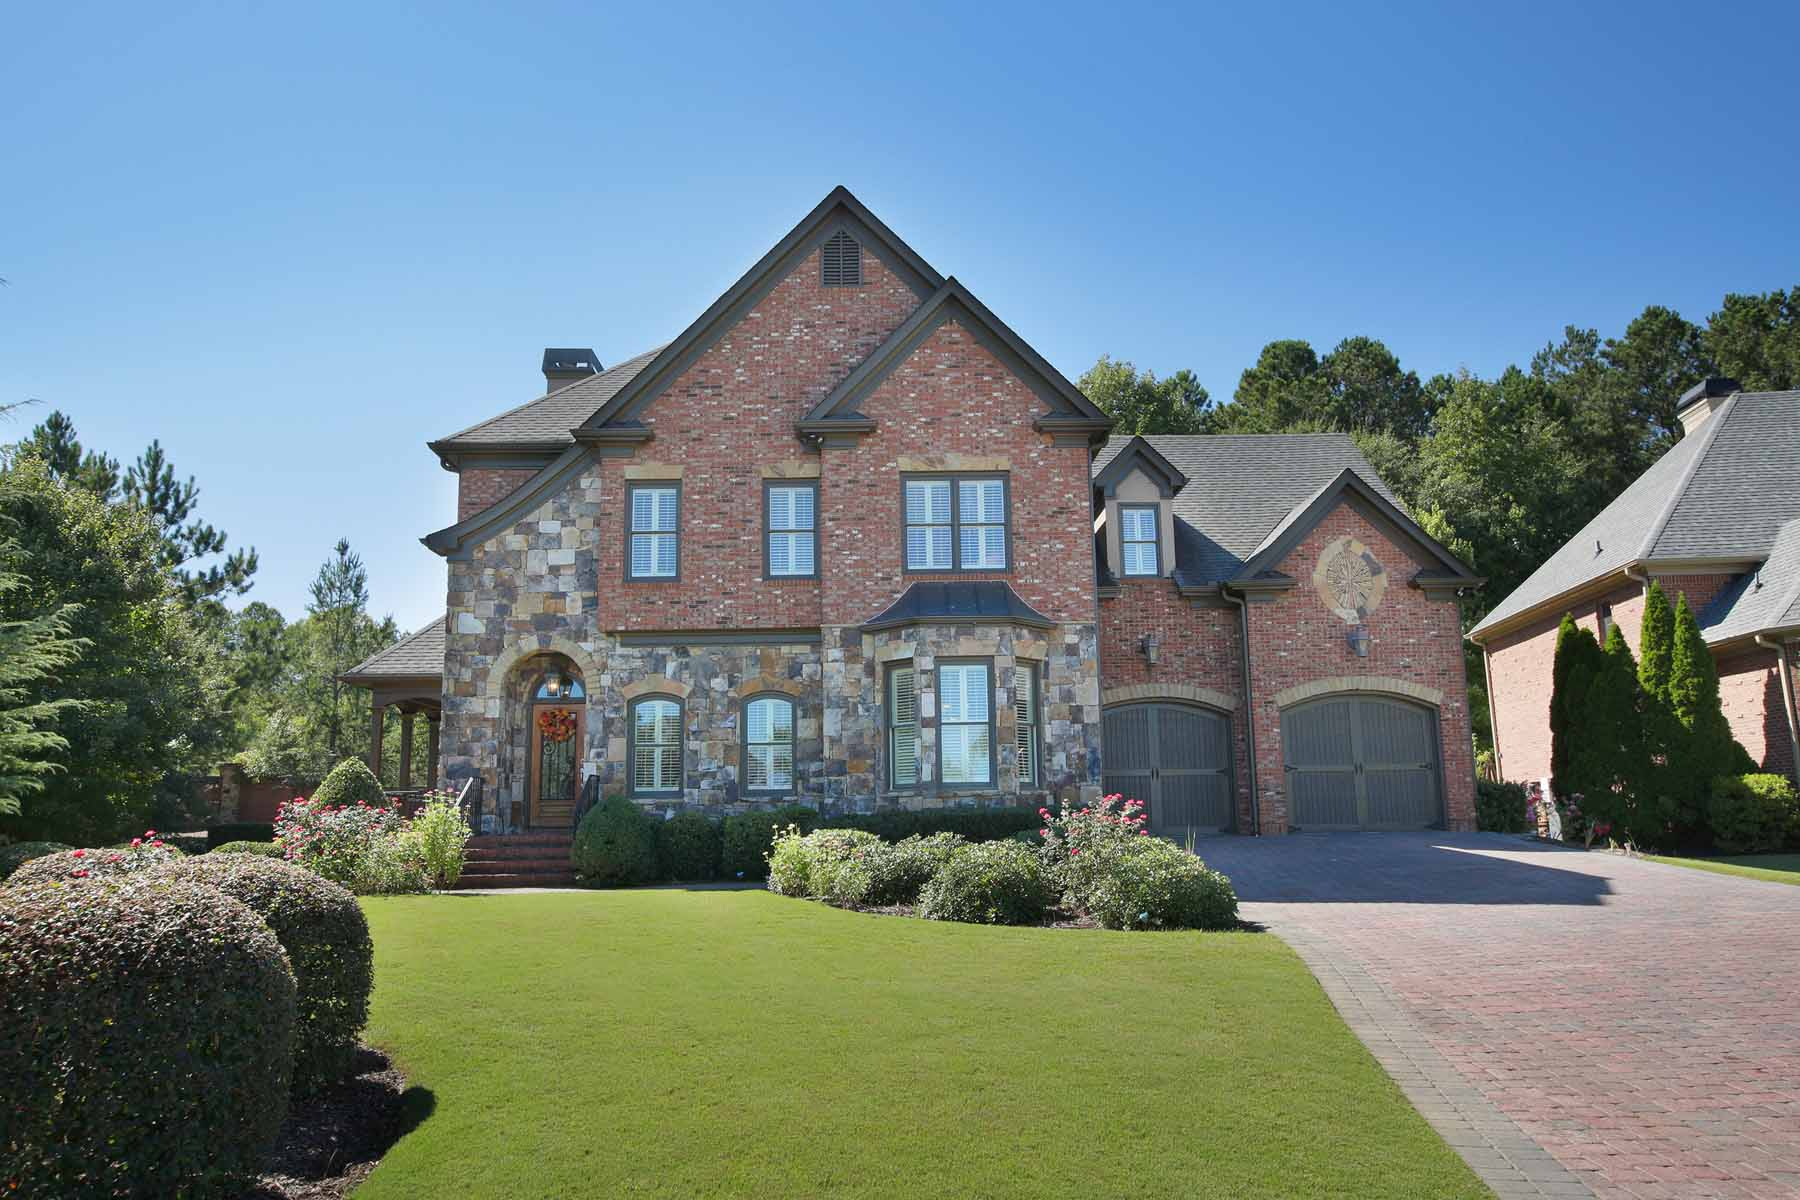 Villa per Vendita alle ore Mediterranean Style Brick And Stone Home On Fabulous Lot In Culdesac 8365 Royal Melbourne Way Duluth, Georgia, 30097 Stati Uniti